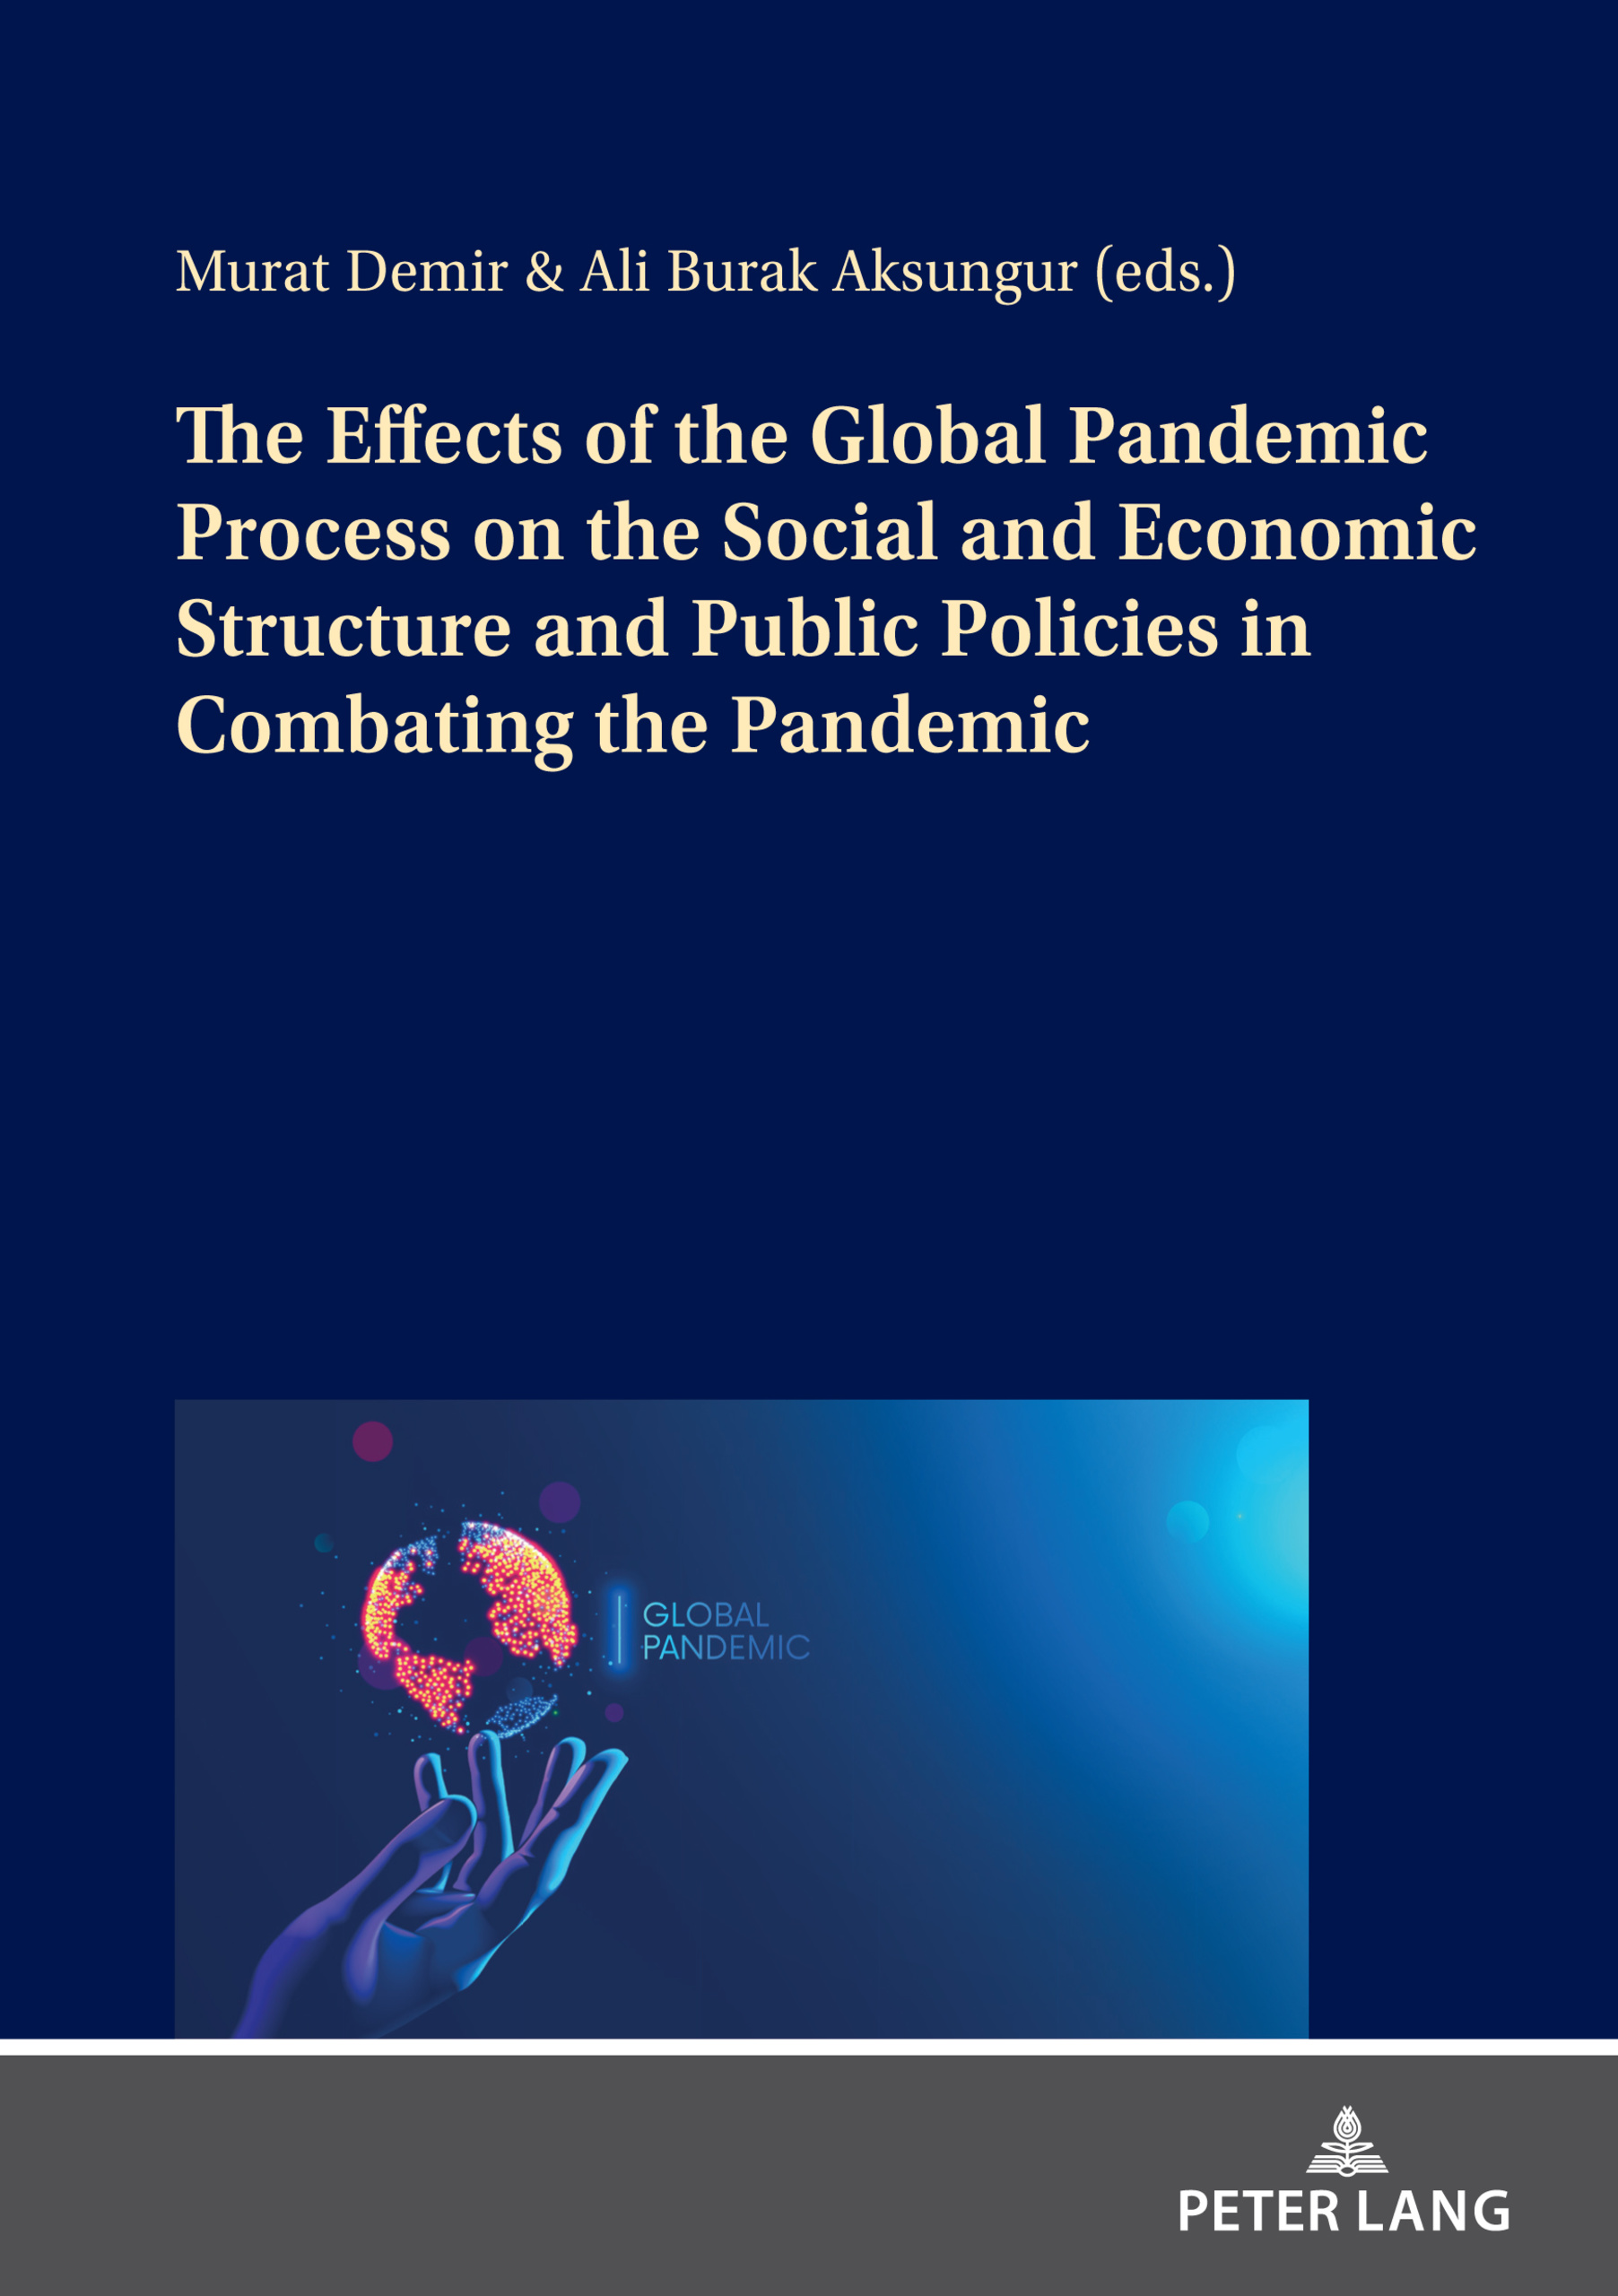 Title: The Effects of the Global Pandemic Process on the Social and Economic Structure and Public Policies in Combating the Pandemic